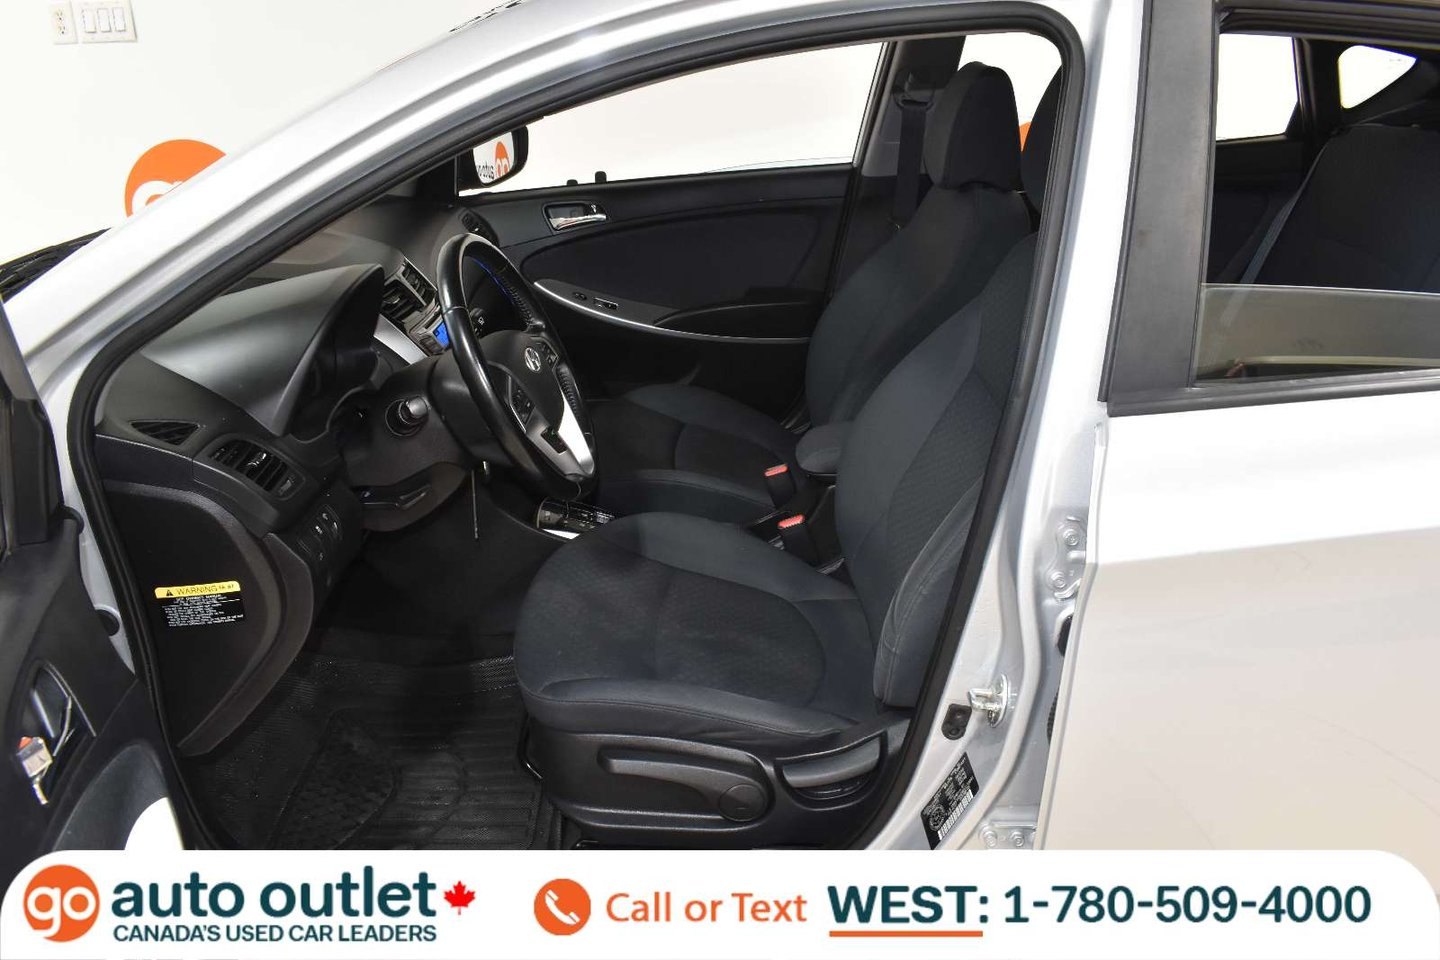 2014 Hyundai Accent GLS for sale in Edmonton, Alberta